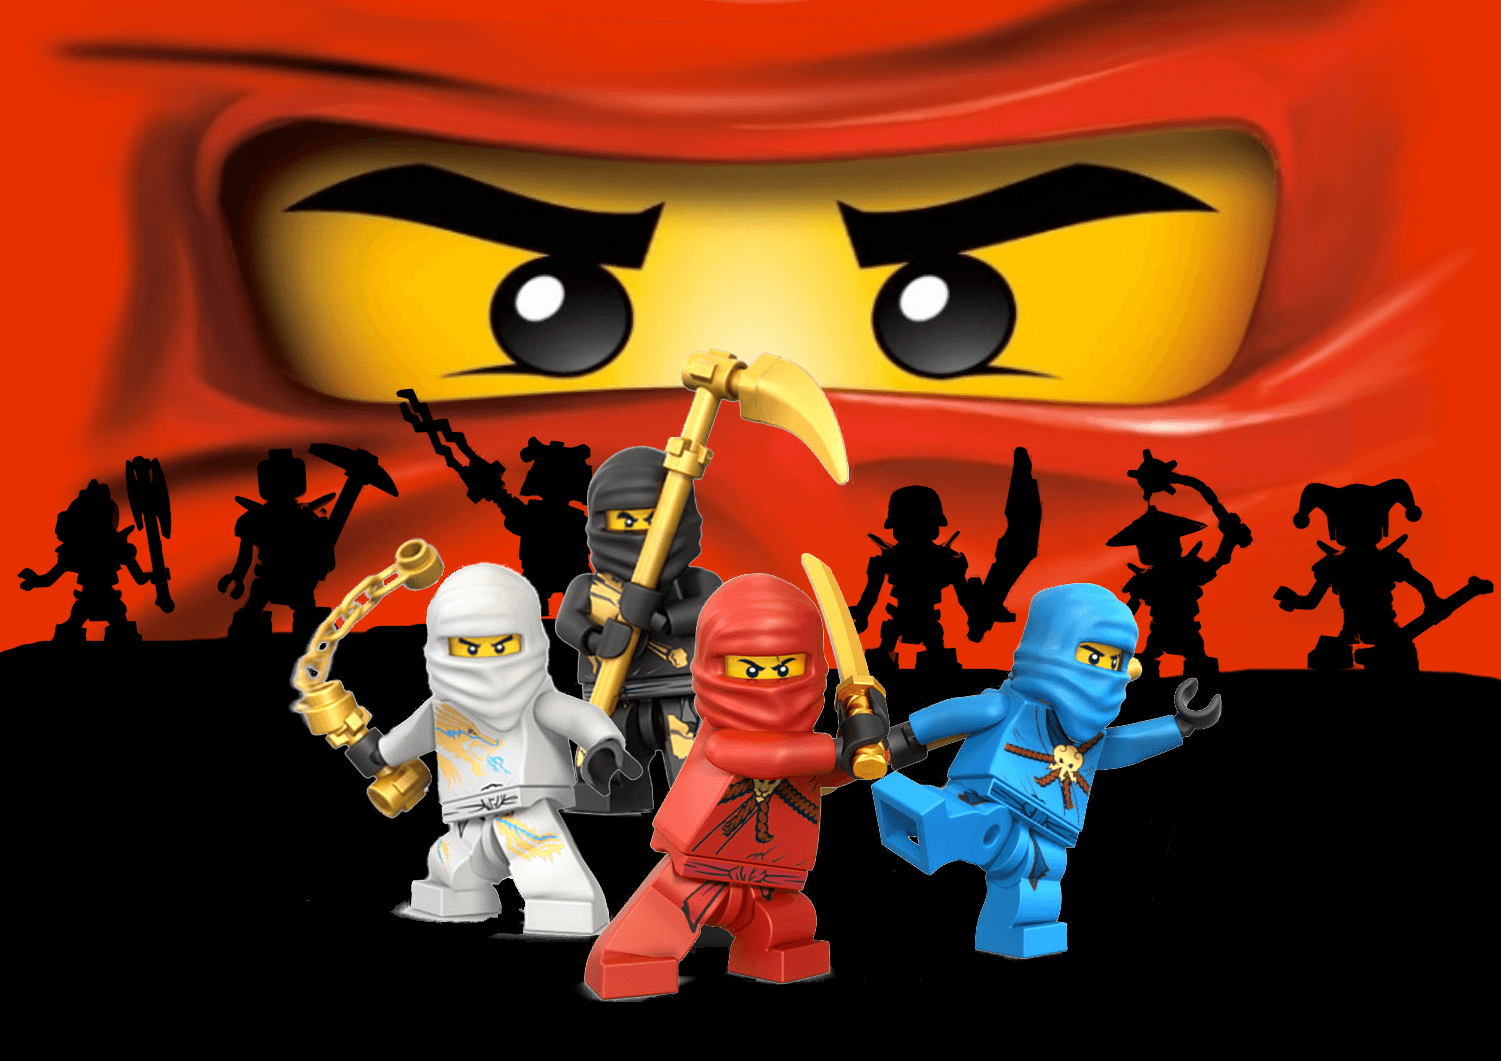 lego ninjago wallpaper high - photo #3